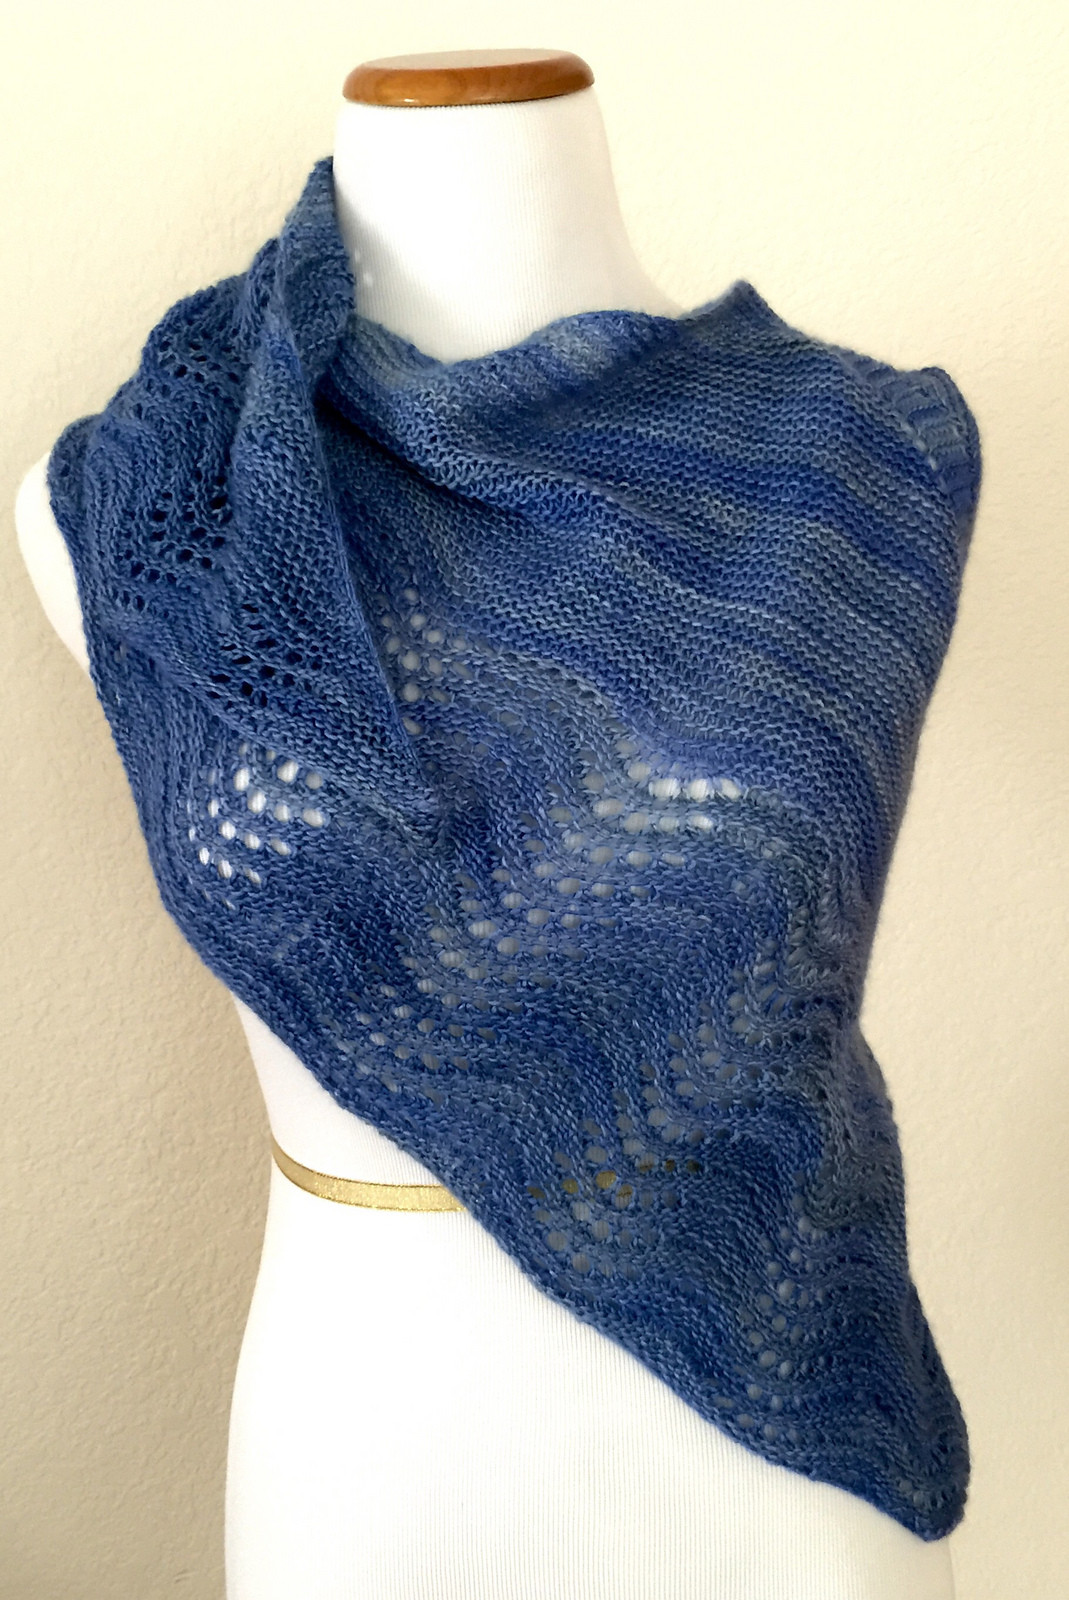 Unique More Easy Shawl Knitting Patterns Free Shawl Patterns Of Beautiful Berroco andean Mist Squelette Shawl Free Knitting Pattern Free Shawl Patterns